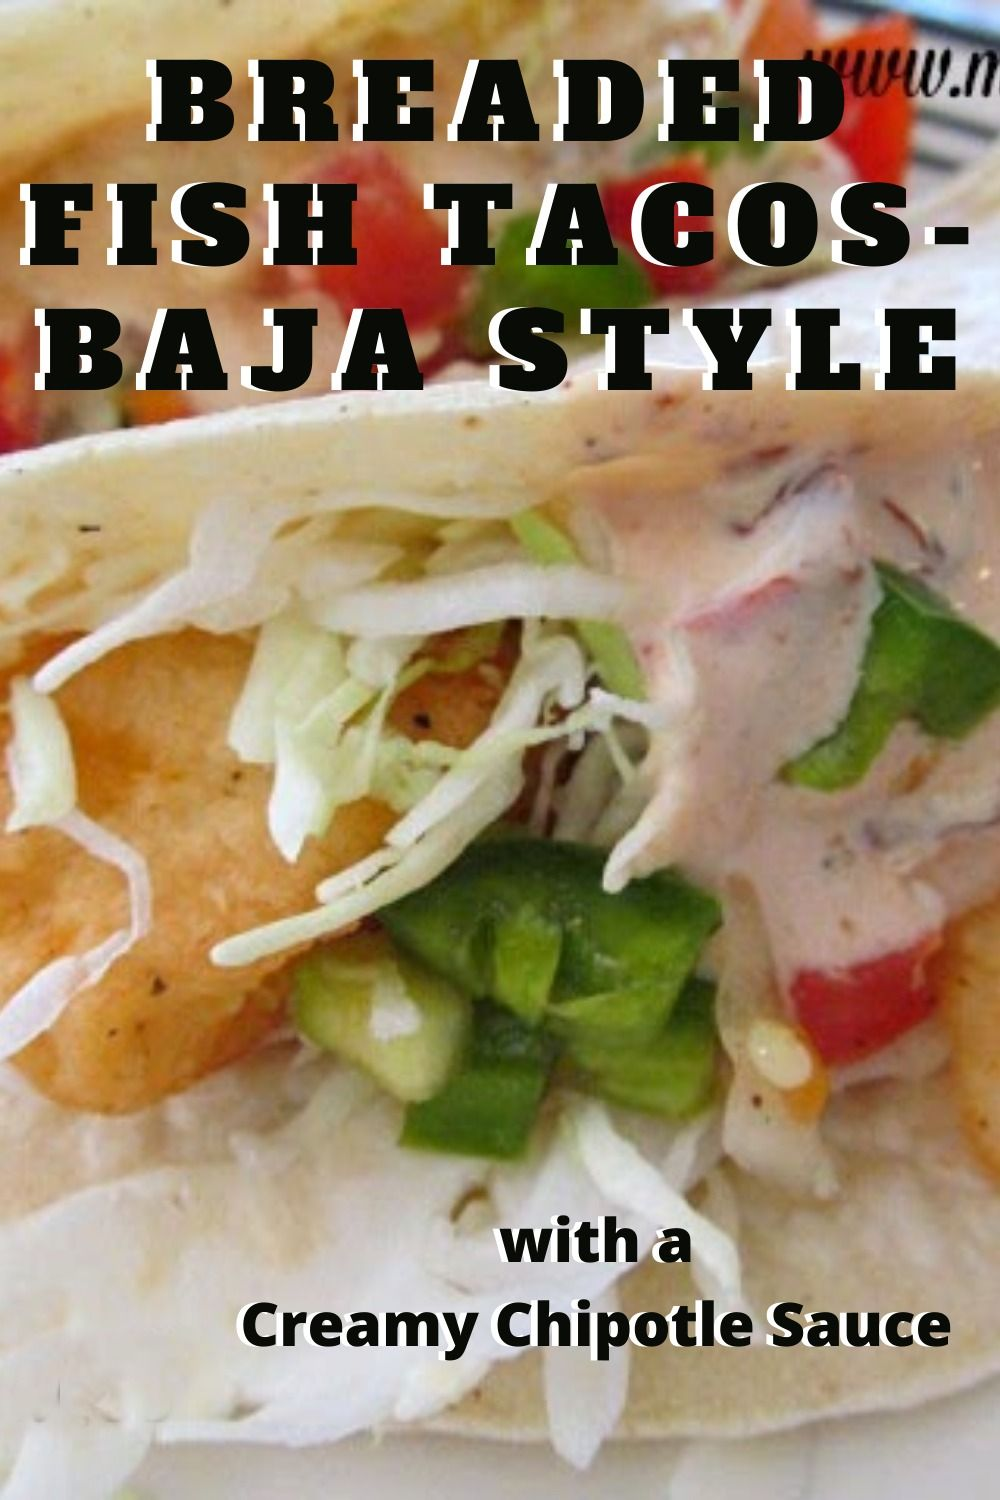 Breaded Fish Tacos With A Creamy Chipotle Sauce My Turn For Us Recipe In 2020 Fish Tacos Dinner Casseroles Fish Tacos Recipe